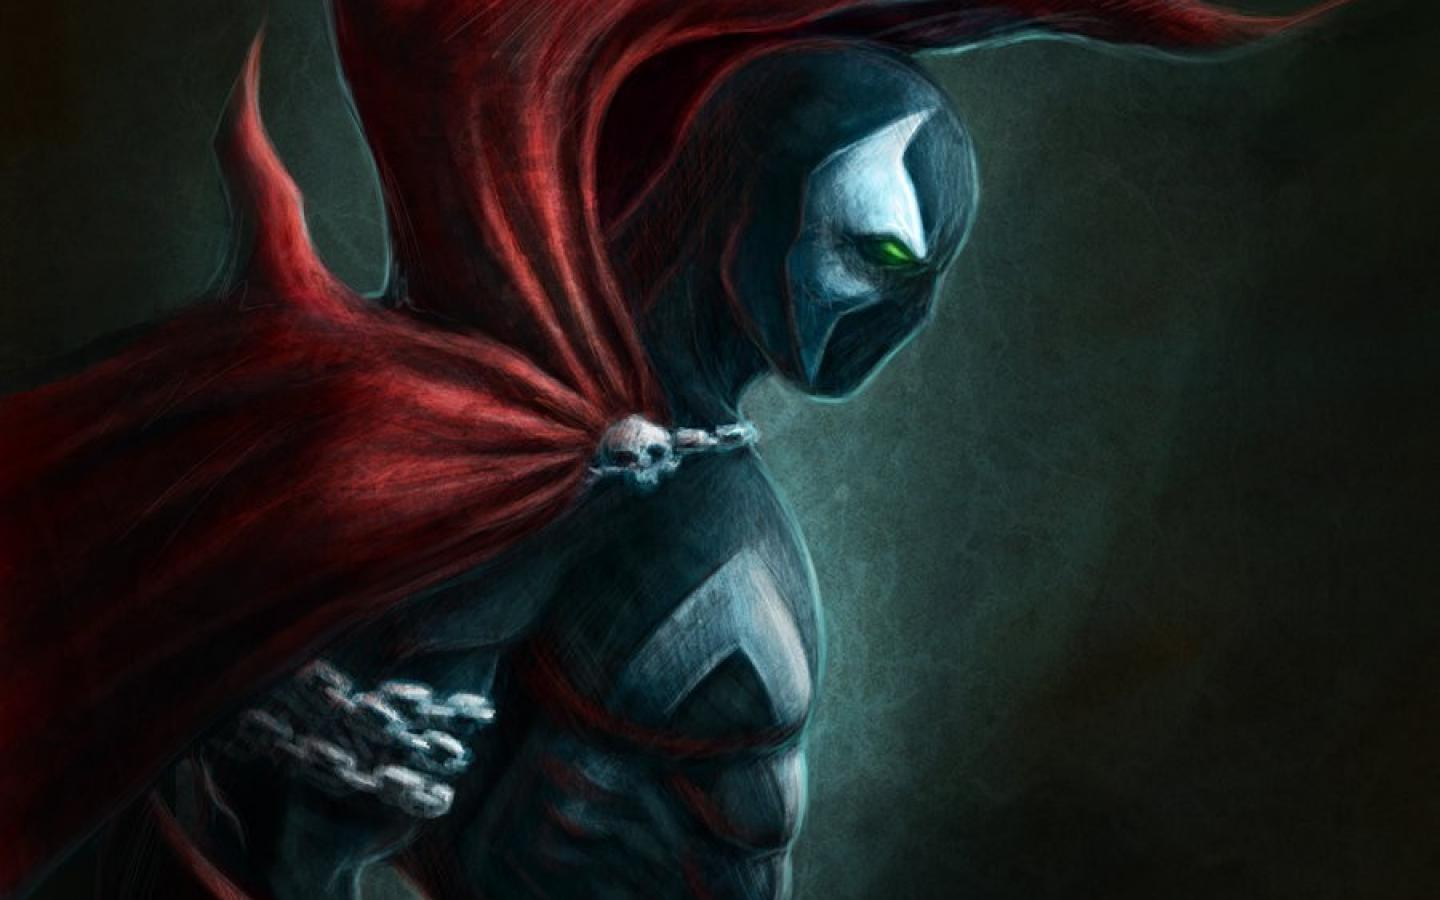 spawn wallpapers 1920x1080 - photo #21